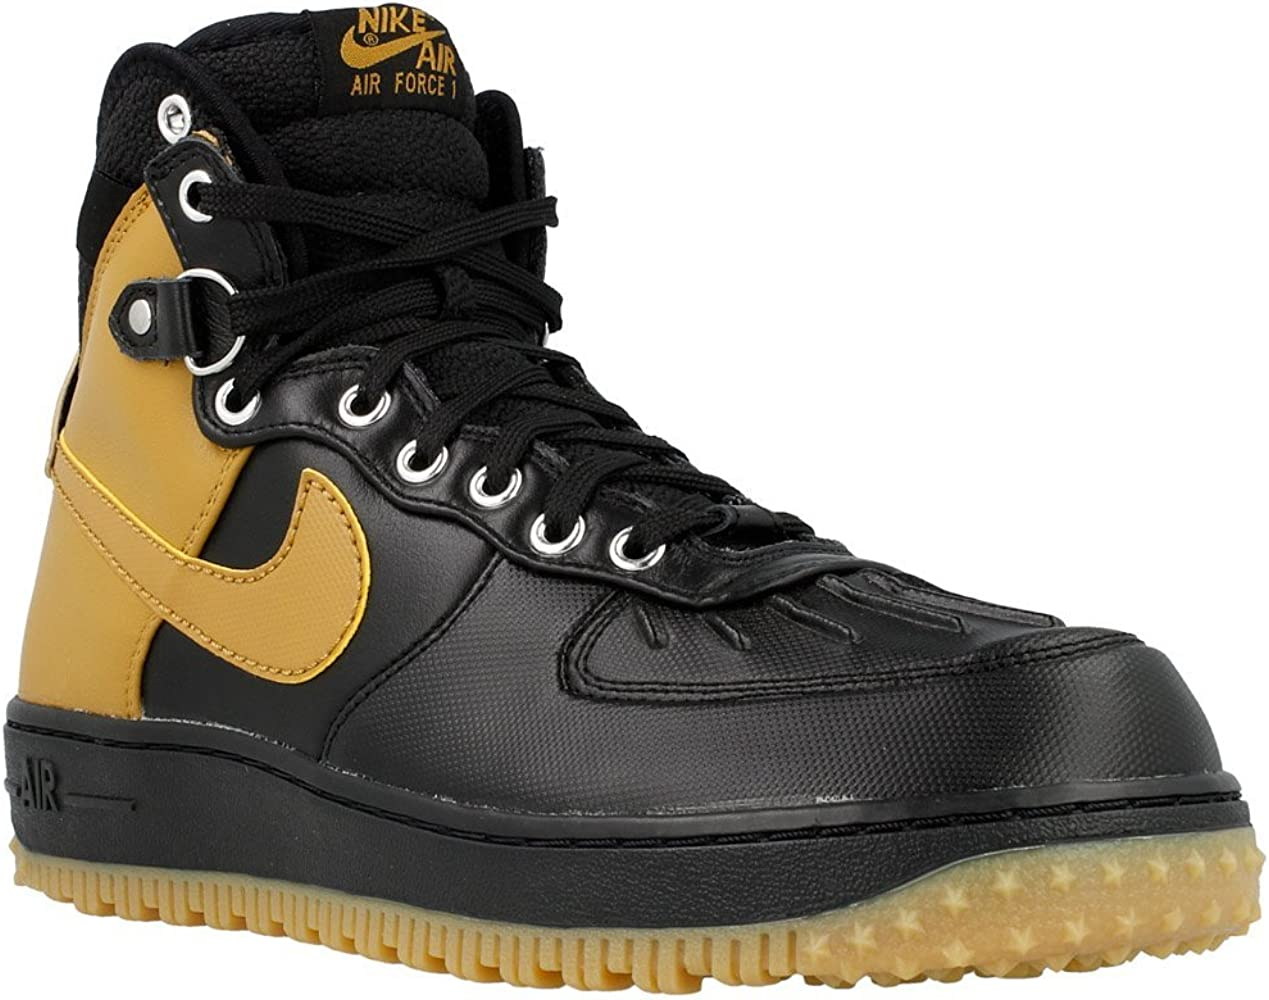 nike air force 1 duckboot boots stiefel watershield